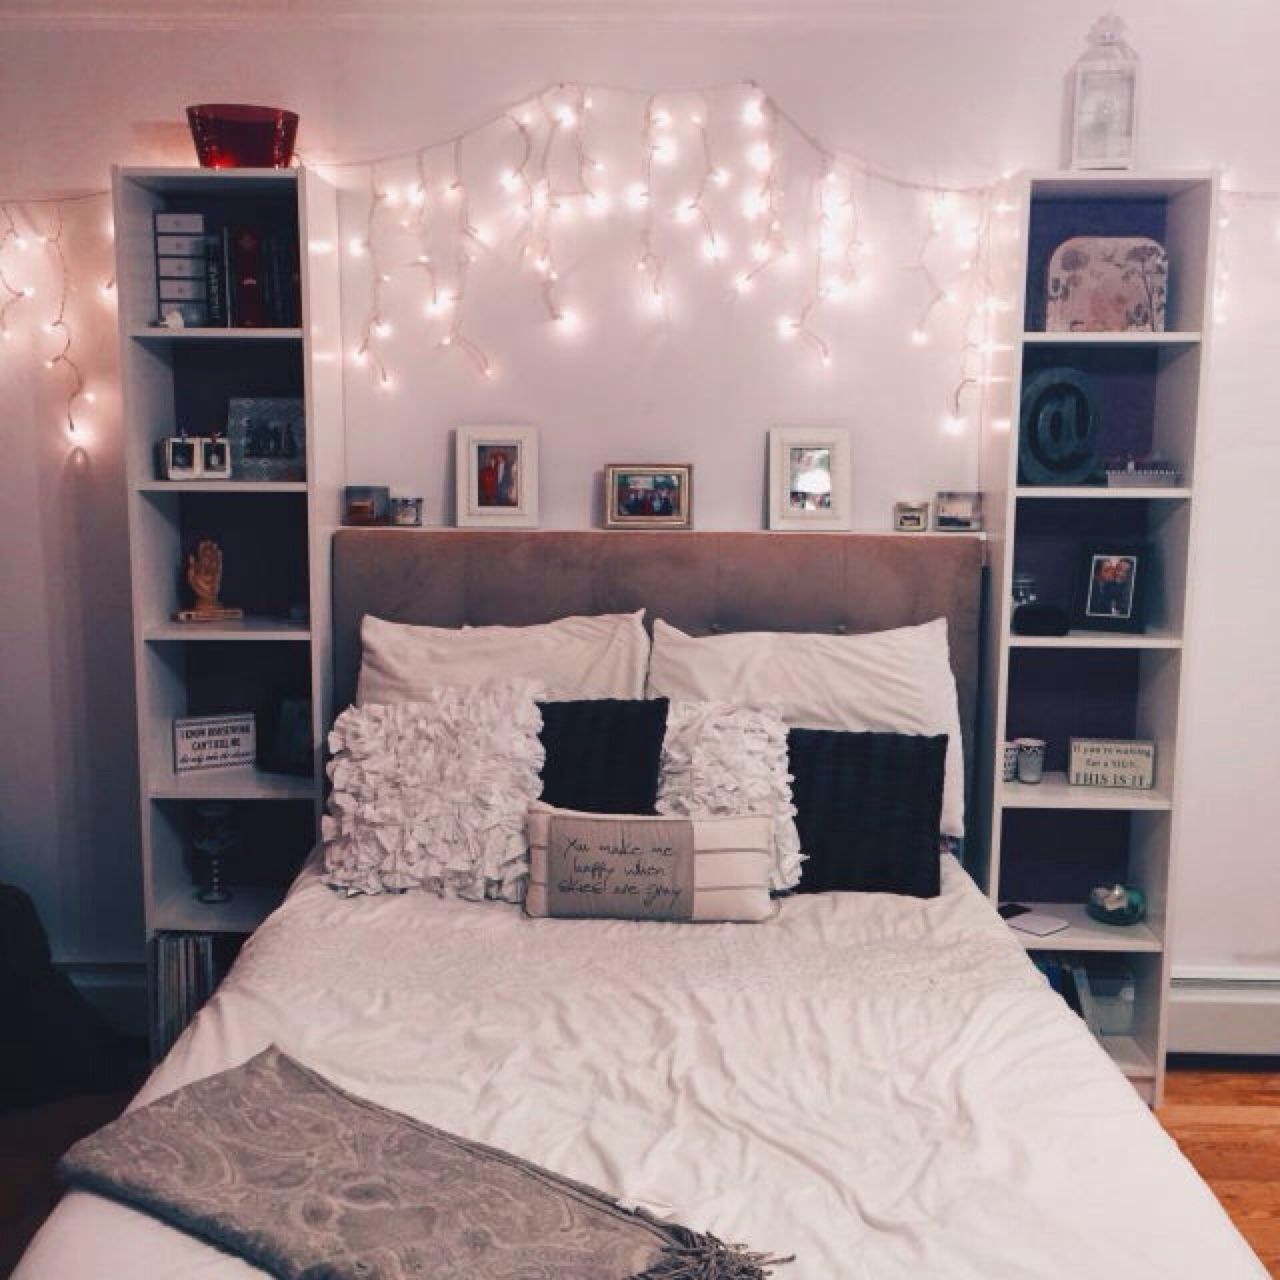 Teenage Room Design Teen Rooms*  N E W  R O O M  I D E A S  Pinterest  Sydney